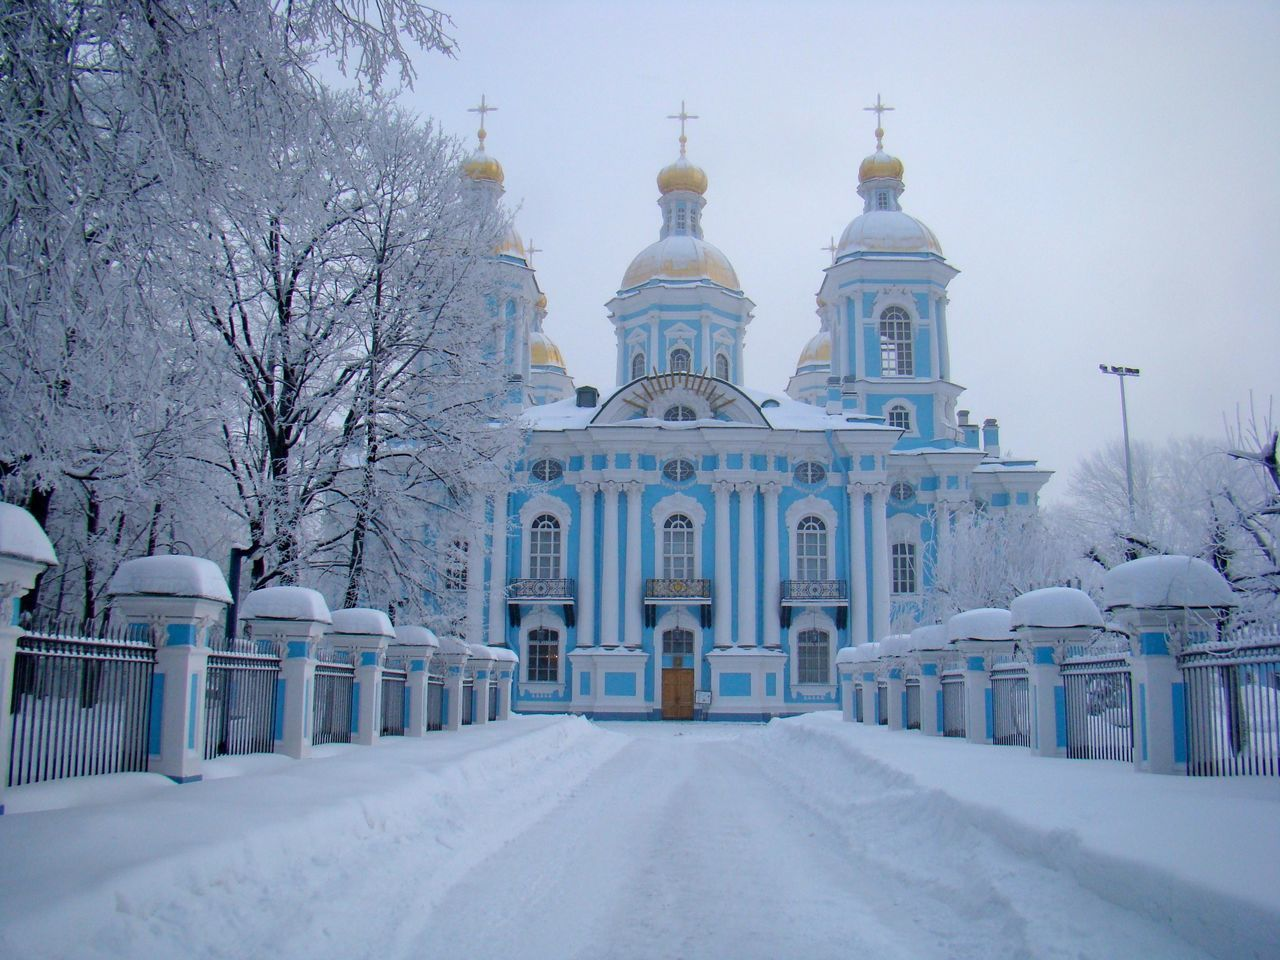 Beautiful Church Churches Nice Nice Atmosphere Russia Saint Petersburg Sanpietroburgo Snow Snow ❄ Showcase: February EyeEm Nature Lover EyeEm Best Edits EyeEm Gallery Eye4photography  EyeEm Best Shots EyeEmBestPics Pastel Power Snow Sports